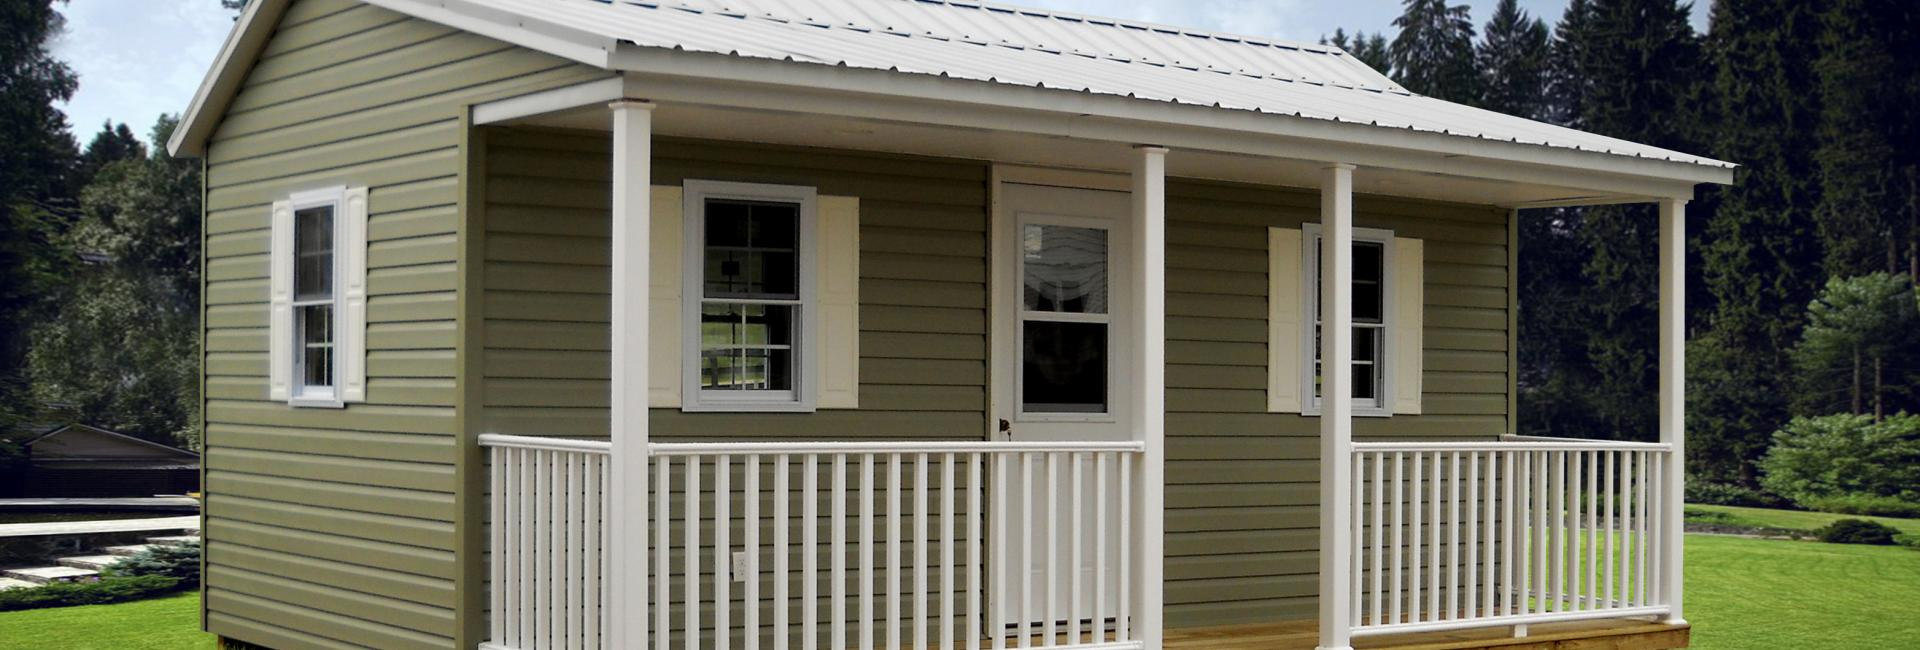 Vinyl side porch cabin in green with white trim